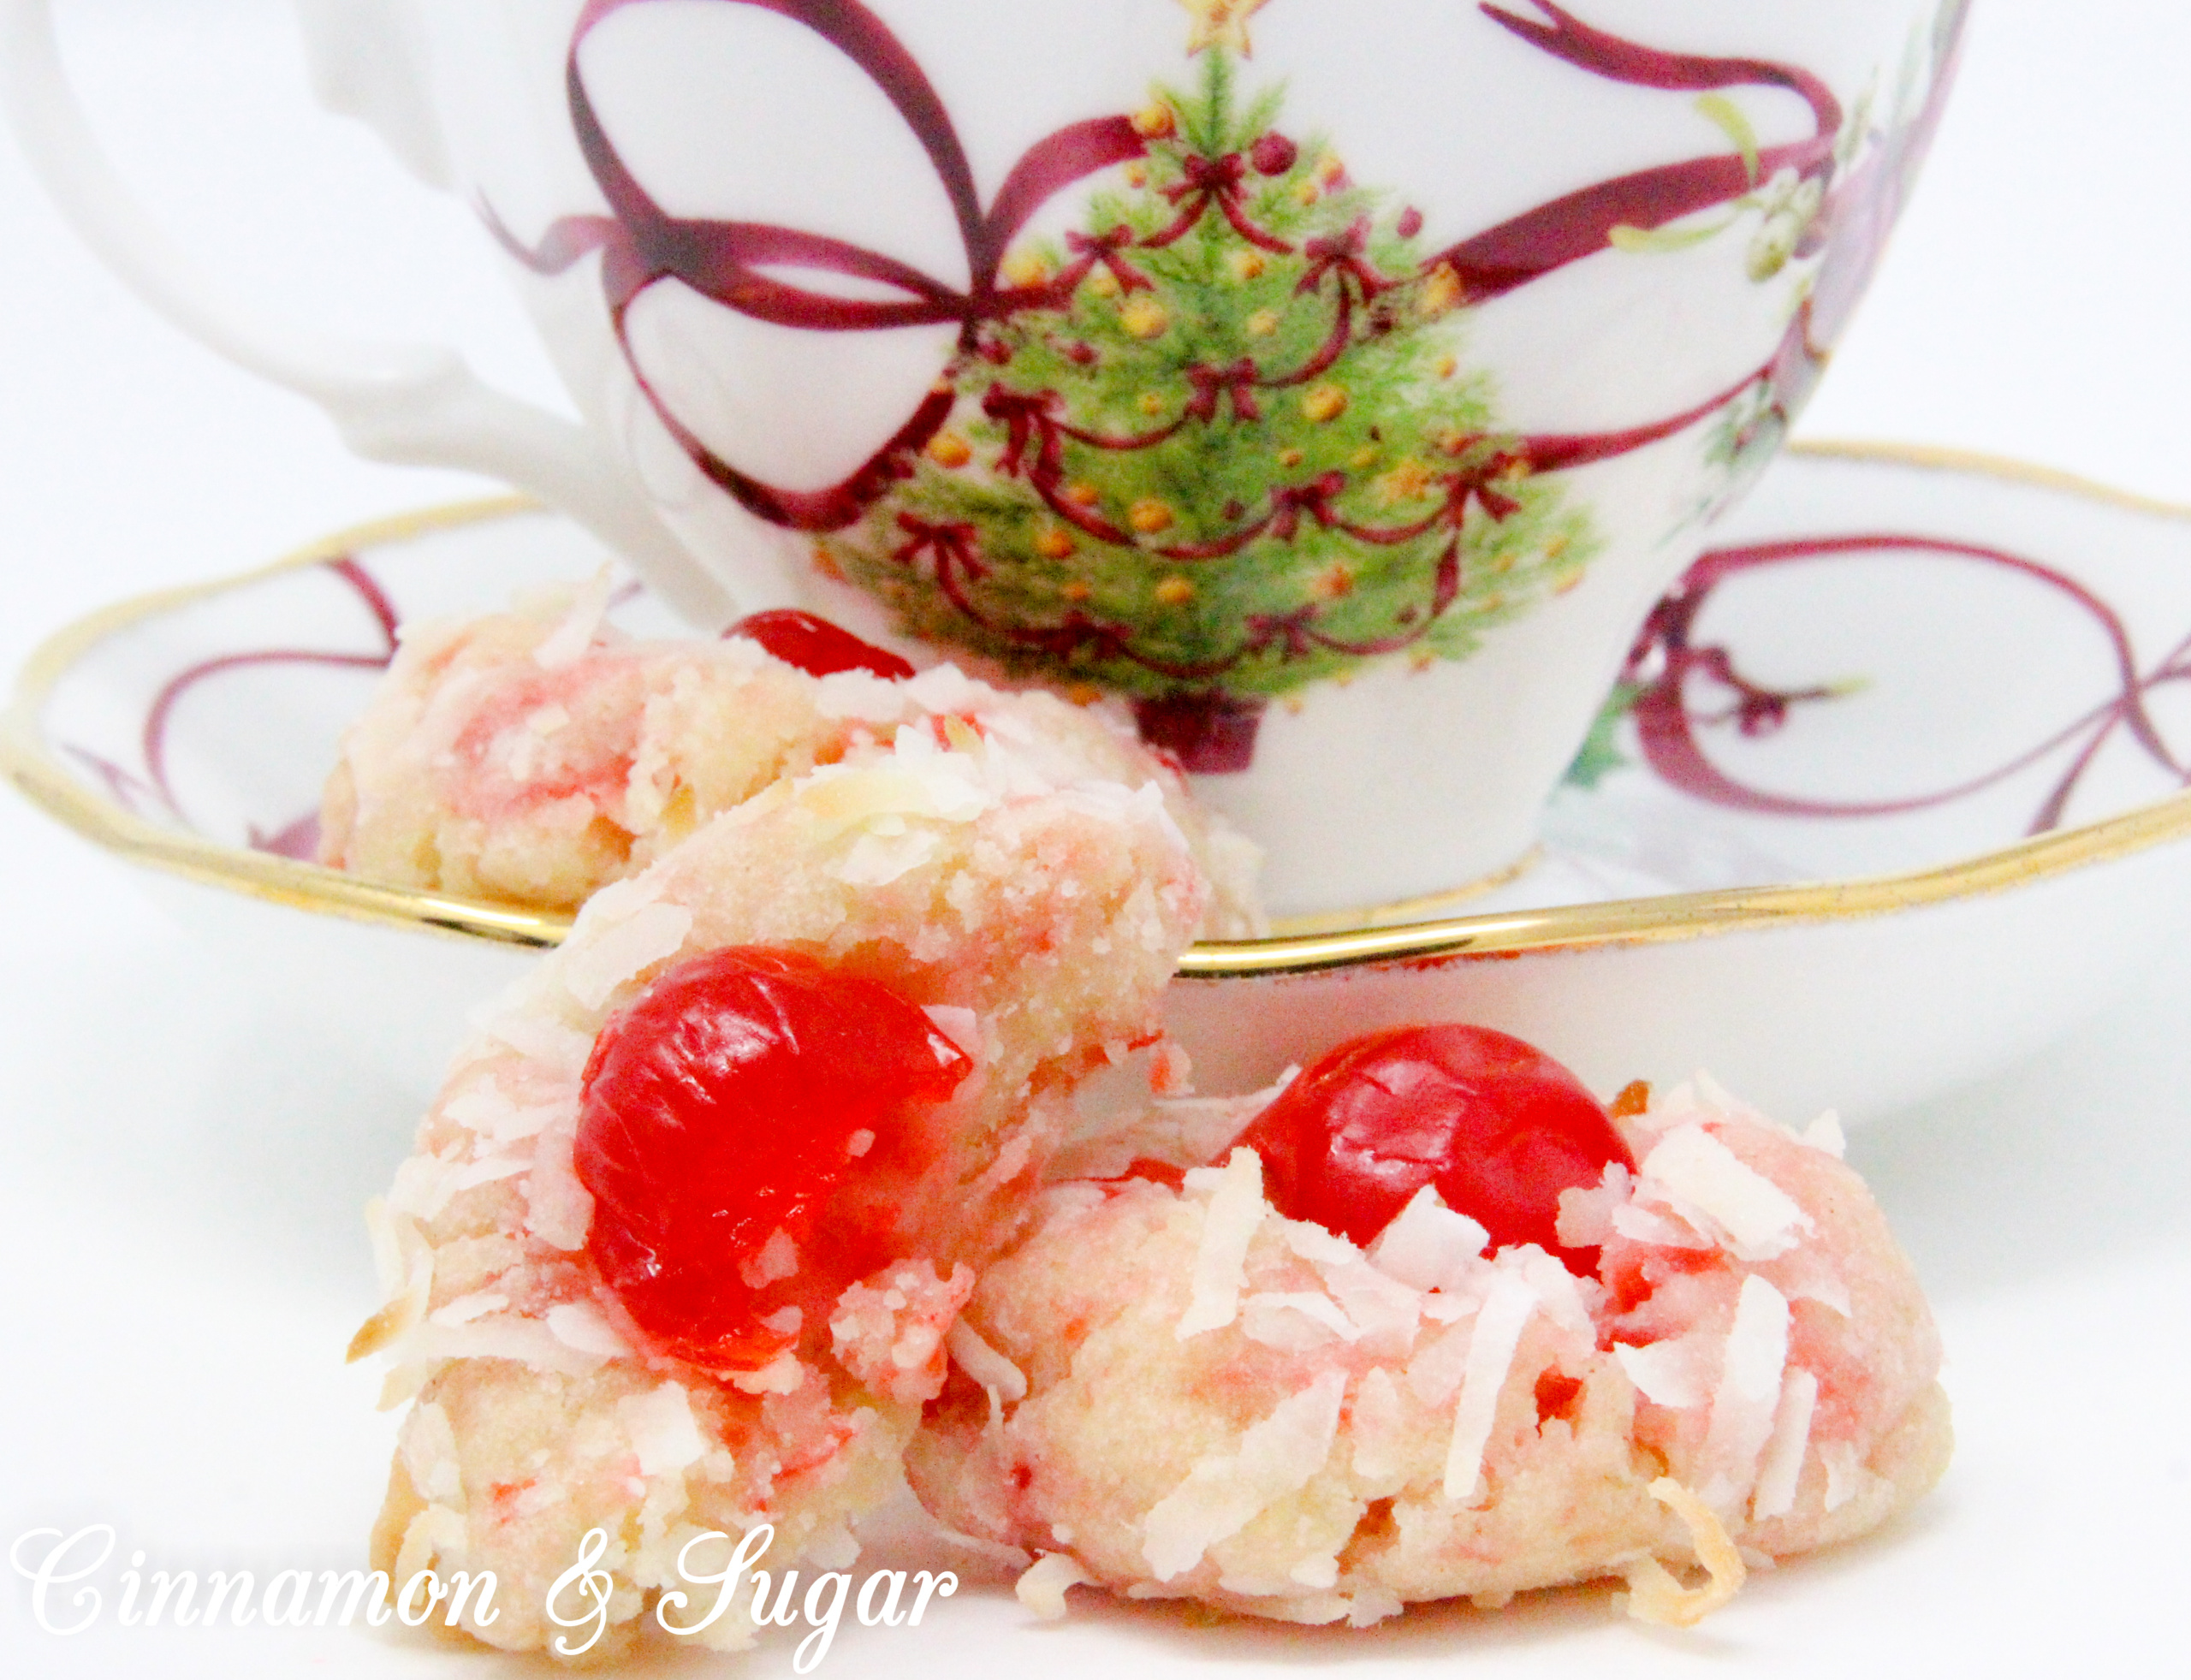 With snowy white coconut and glistening red cherries, shortbread-style Yuletide Coconut Cherry Cookies add holiday cheer to Christmas cookie platters. Recipe created by Cinnamon & Sugar for Deborah Garner, author of YULETIDE AT MOONGLOW.